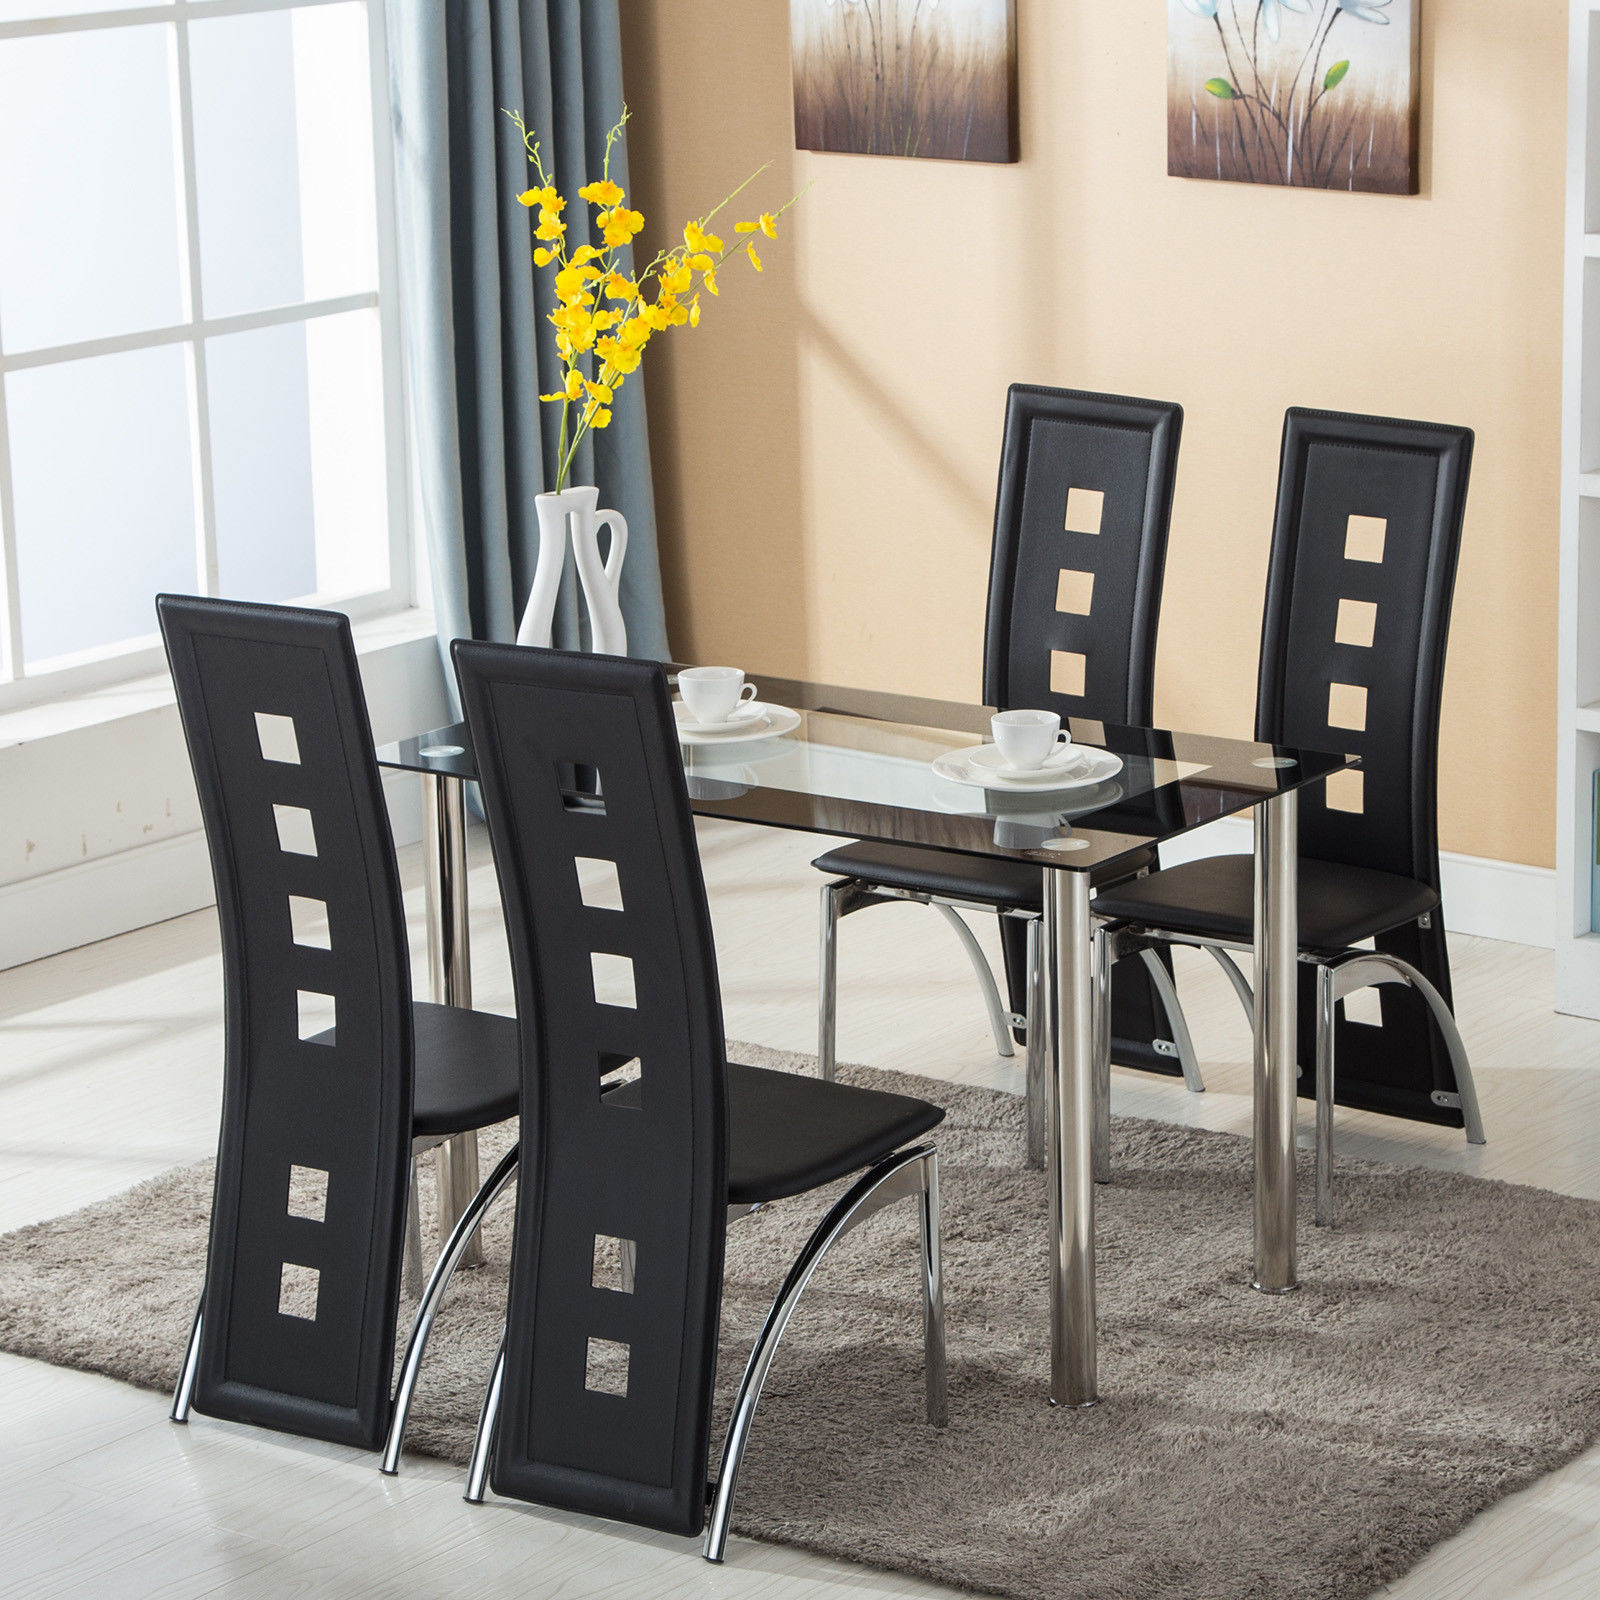 Merveilleux Details About 5 Piece Dining Set Glass Top Table And 4 Leather Chair For  Kitchen Dining Room